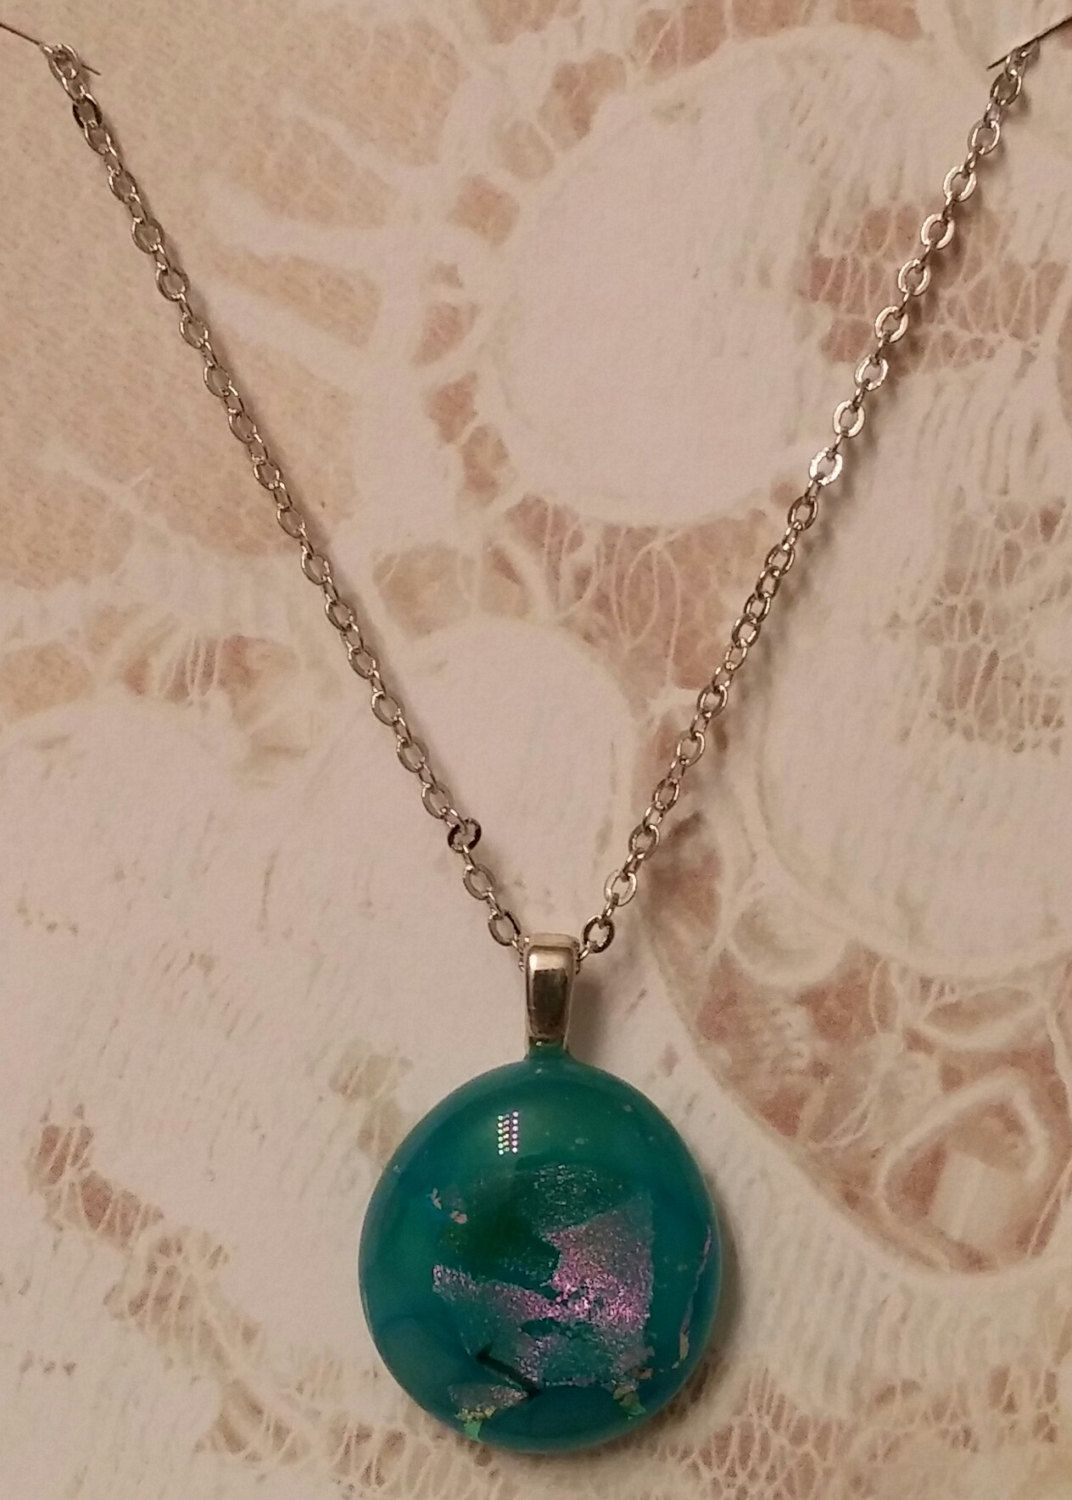 New Listing.......Carribean Sand.....Dichroic Fused Glass Necklace.....Handmade by DICHROICCLASSYGLASS on Etsy